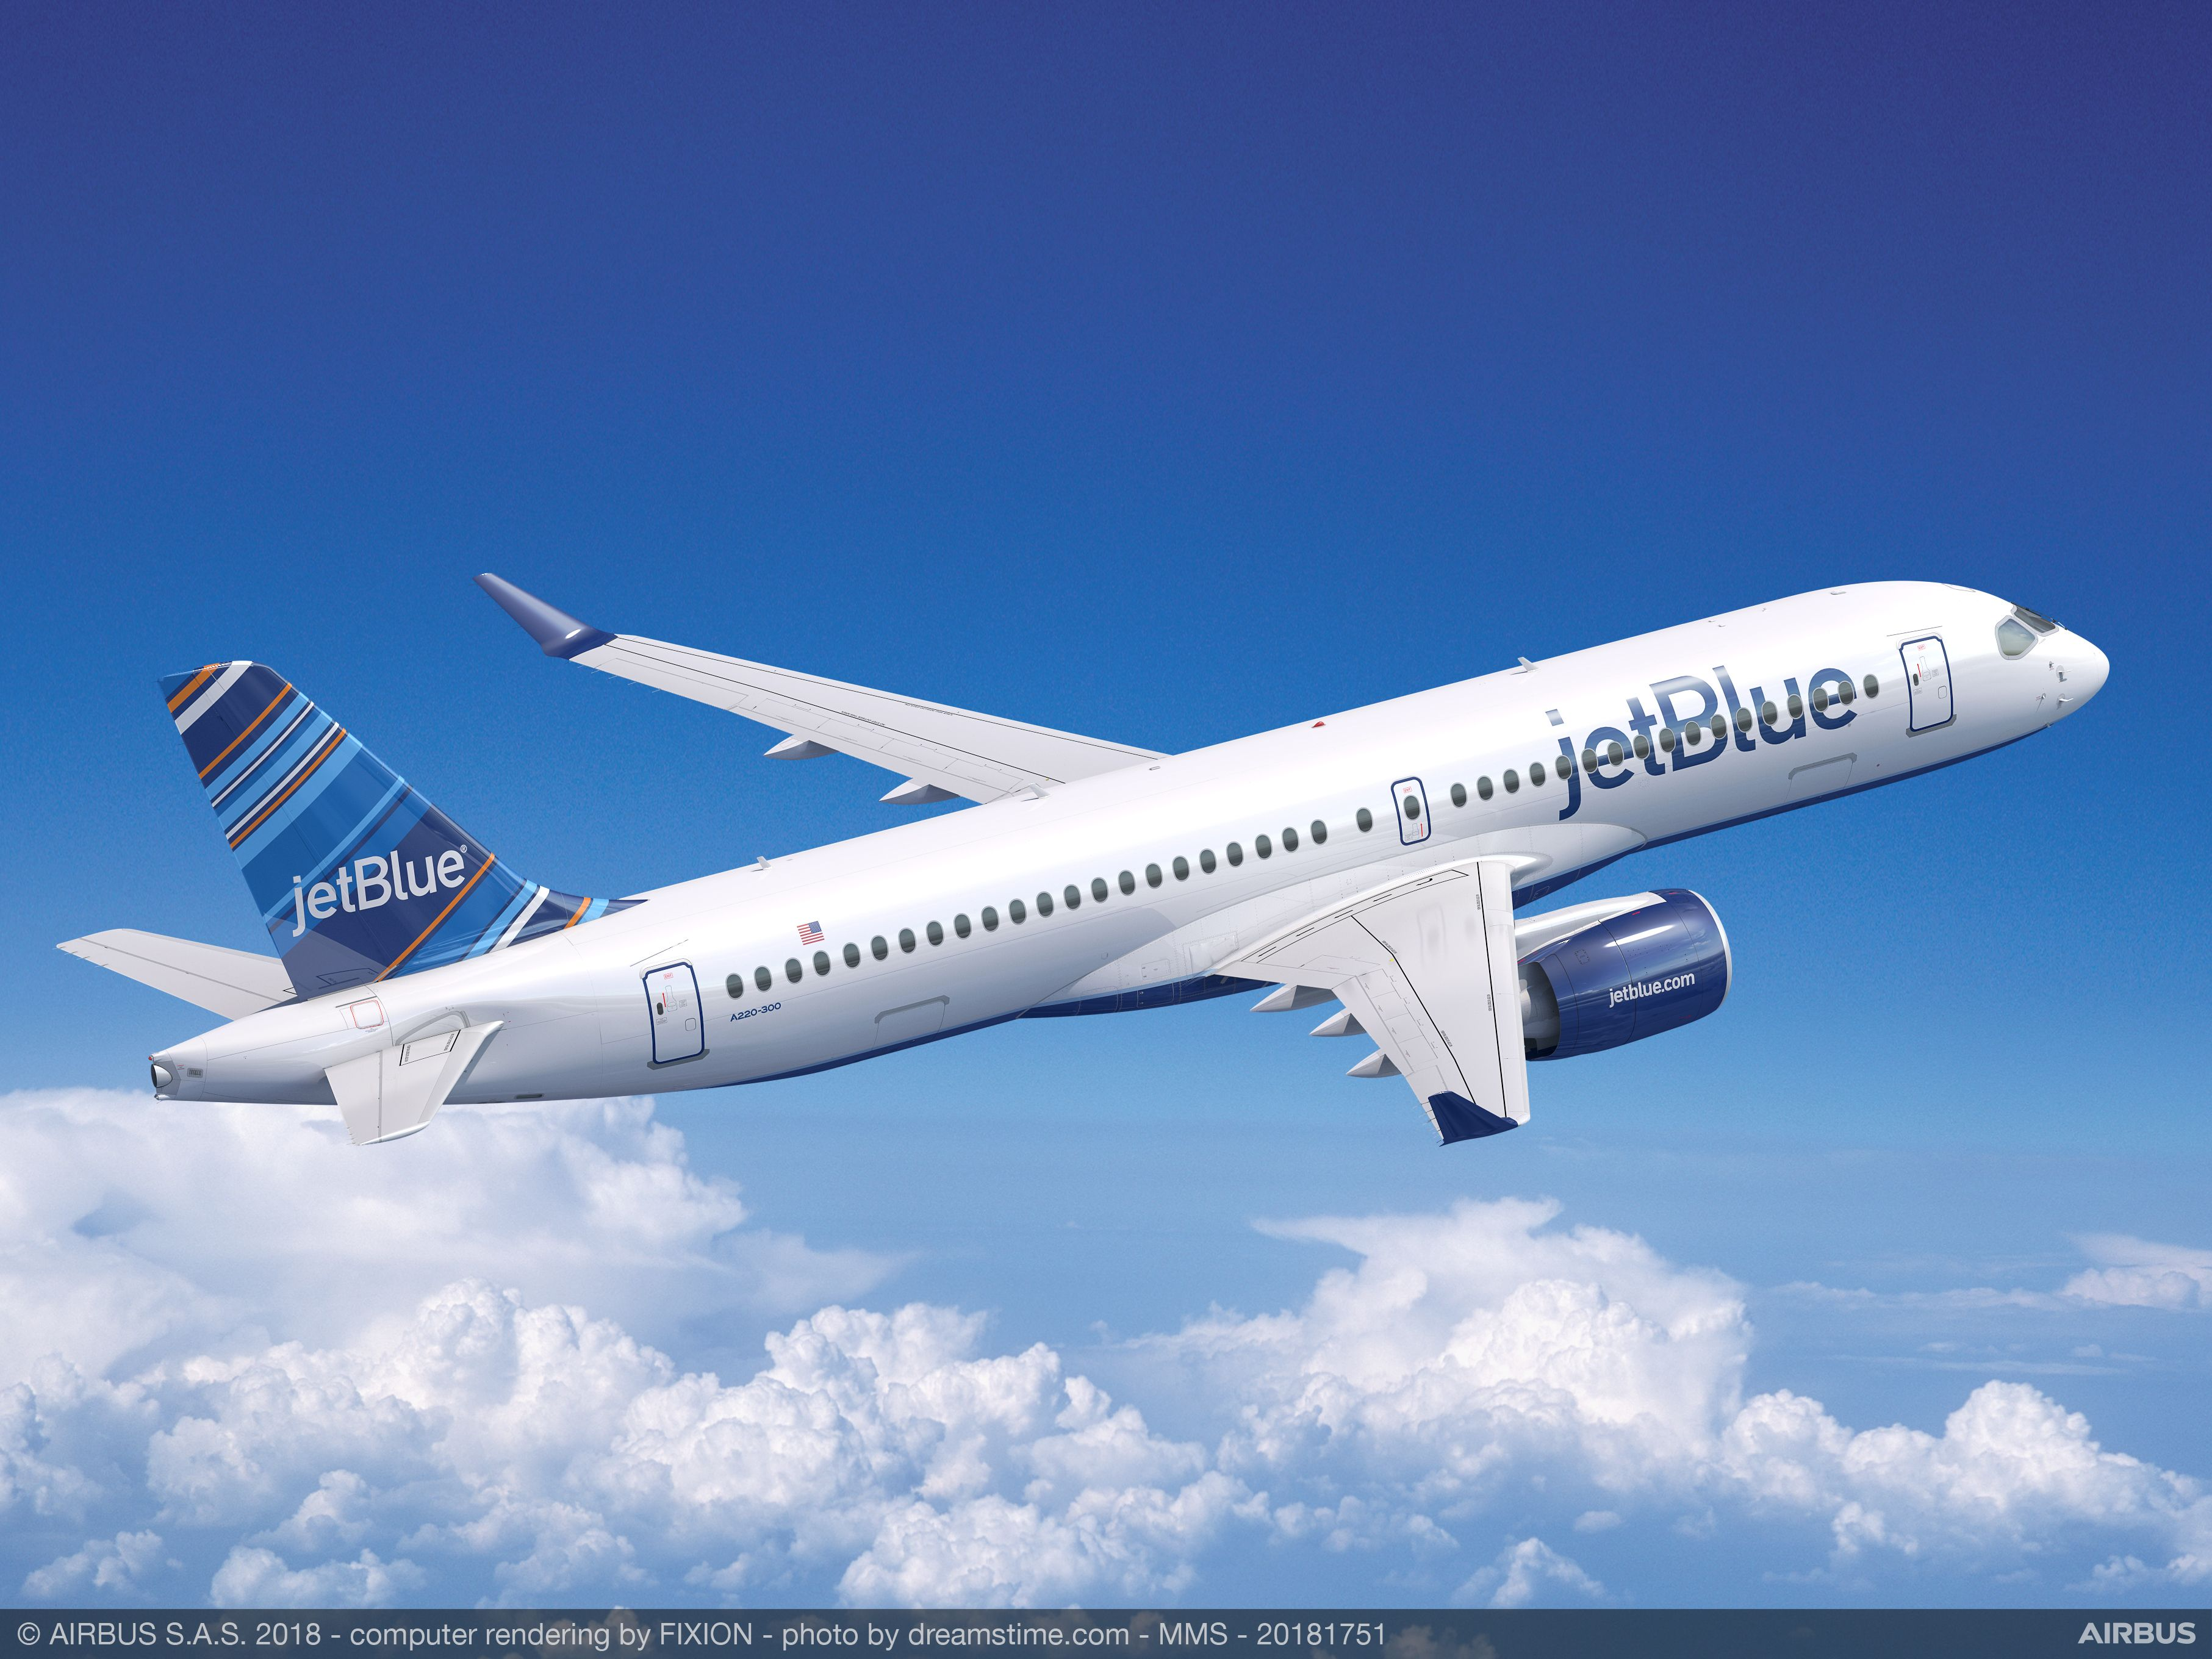 Jetblue Chooses The Airbus A220 To Replace Its Embraer Fleet The